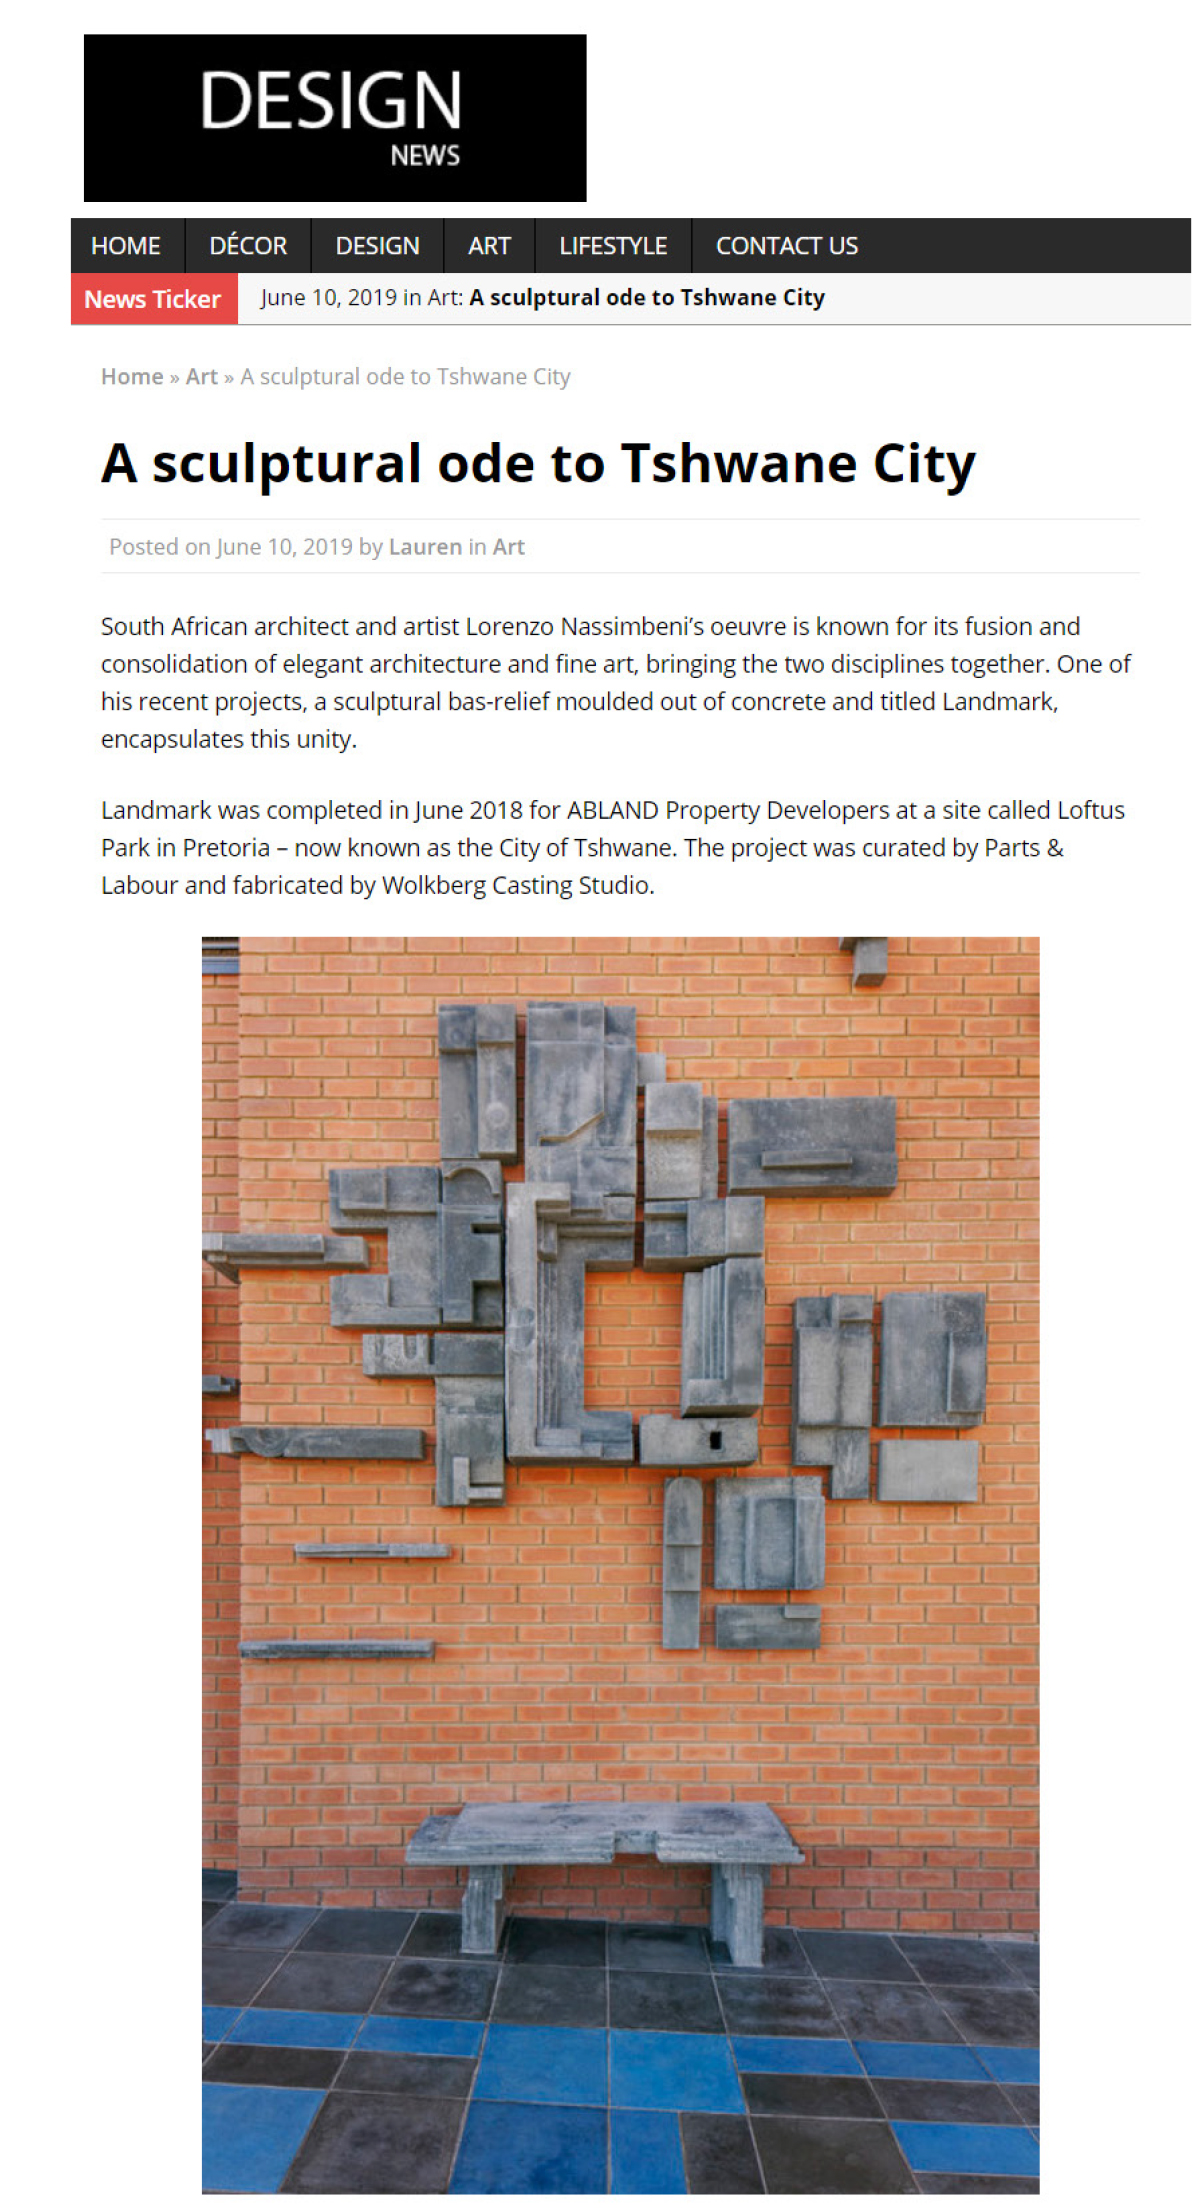 Loftus Park sculpture publication in DESIGN News June 2019   I am pleased to announce the  publication  of the Loftus Park sculpture, 'Landmark', in DESIGN News. Thank you to the editorial team at  SCOUT PR & Social Media . Special thanks to curators and collaborators Liesl Potgieter and Brendan Copestake of  Parts & Labour , and to Abland Property Developers, who commissioned the project. Thanks too go to  Wolkberg Casting Studios  for their efforts in the fabrication of the piece, and to Marlet Odendaal and Markus Jordaan for support in the design process (3D render and technical drawing work). Photograph :  Markus Jordaan   Markus Jordaan